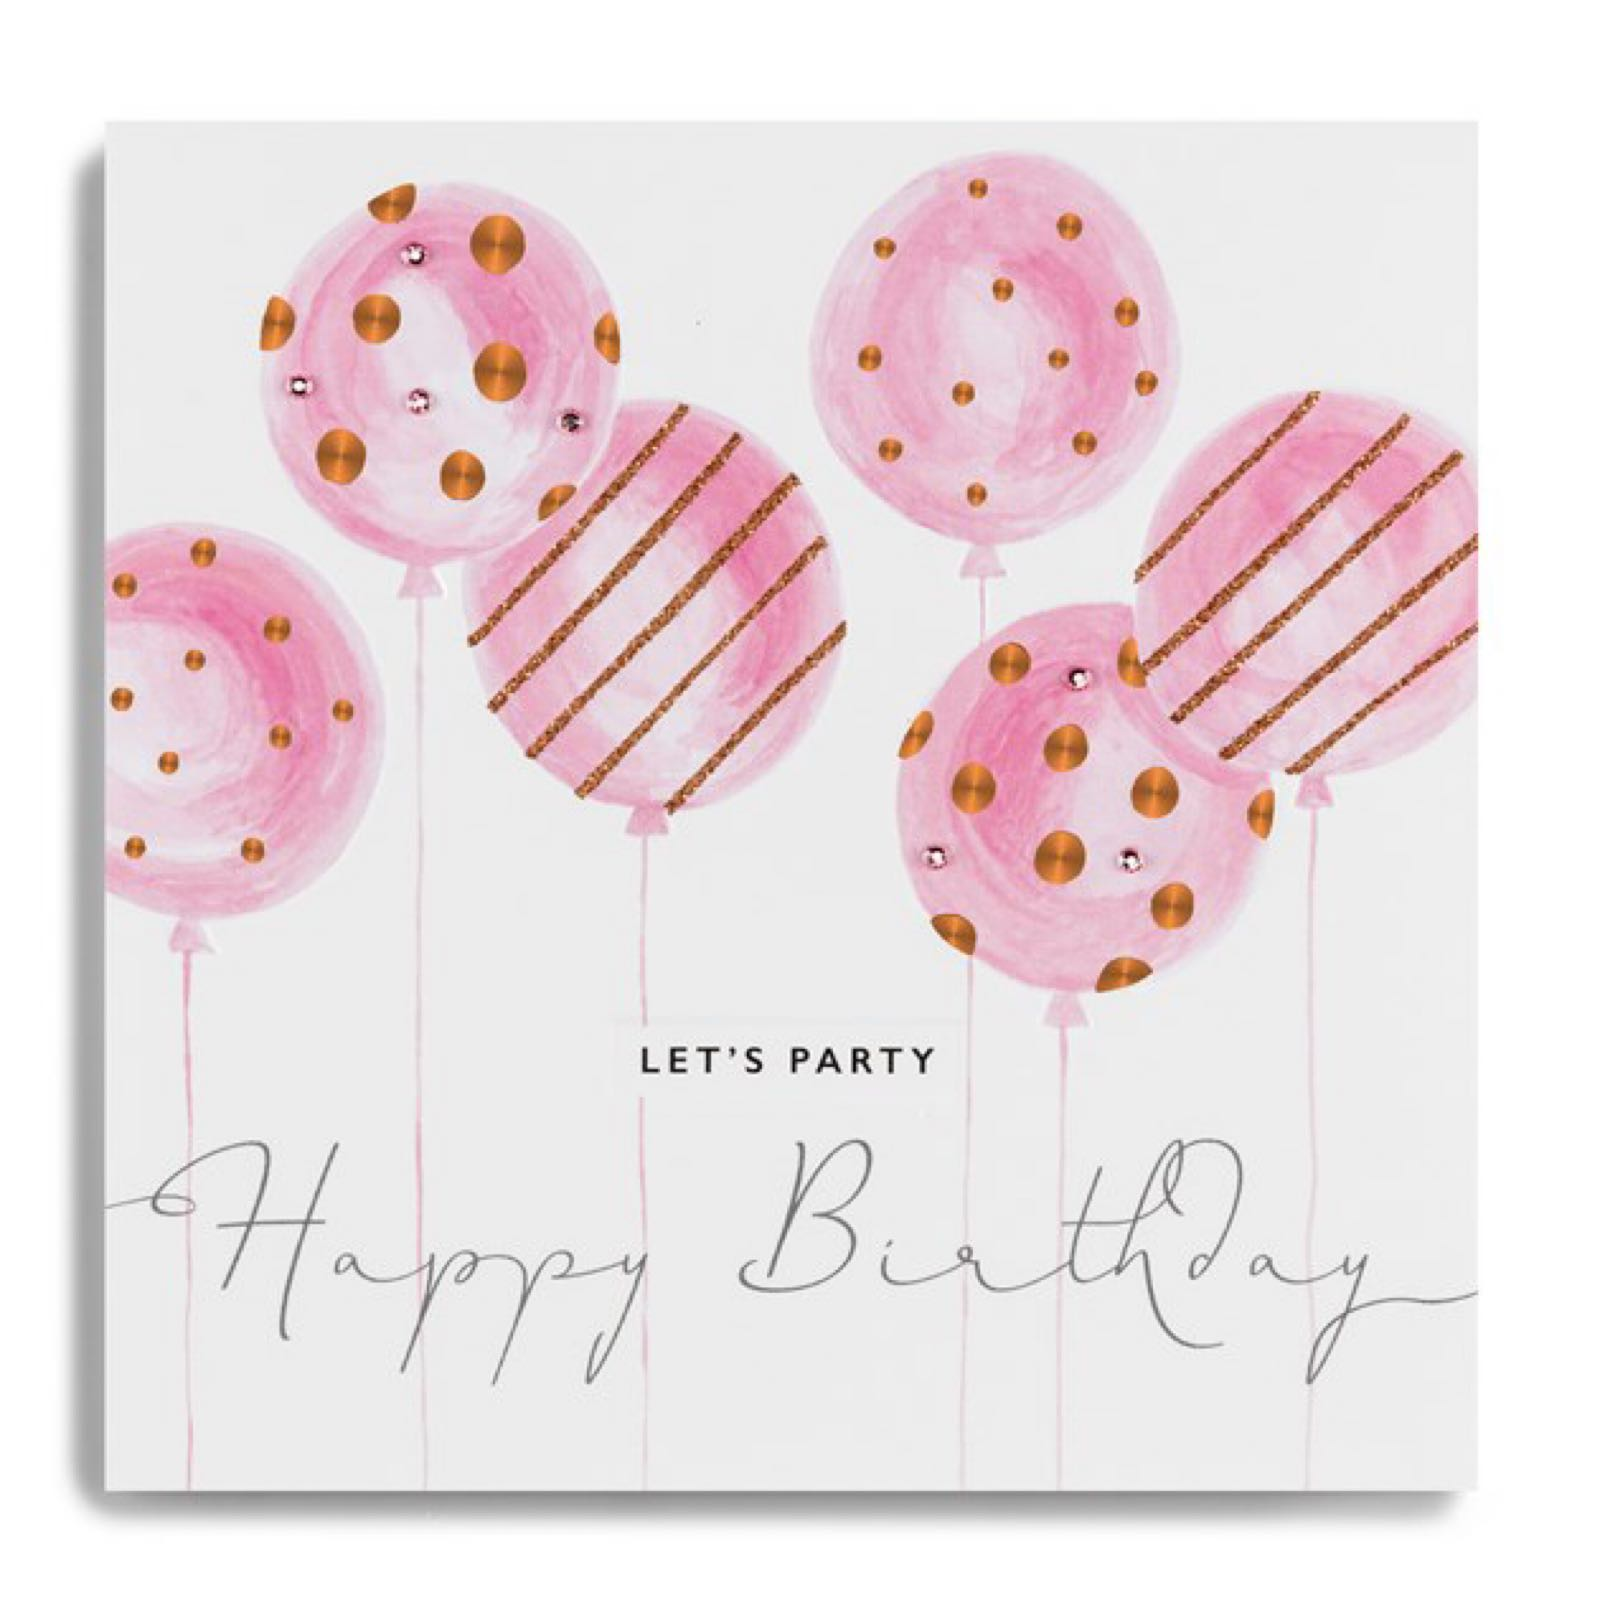 Janie Wilson  copper leaf balloons let's party card